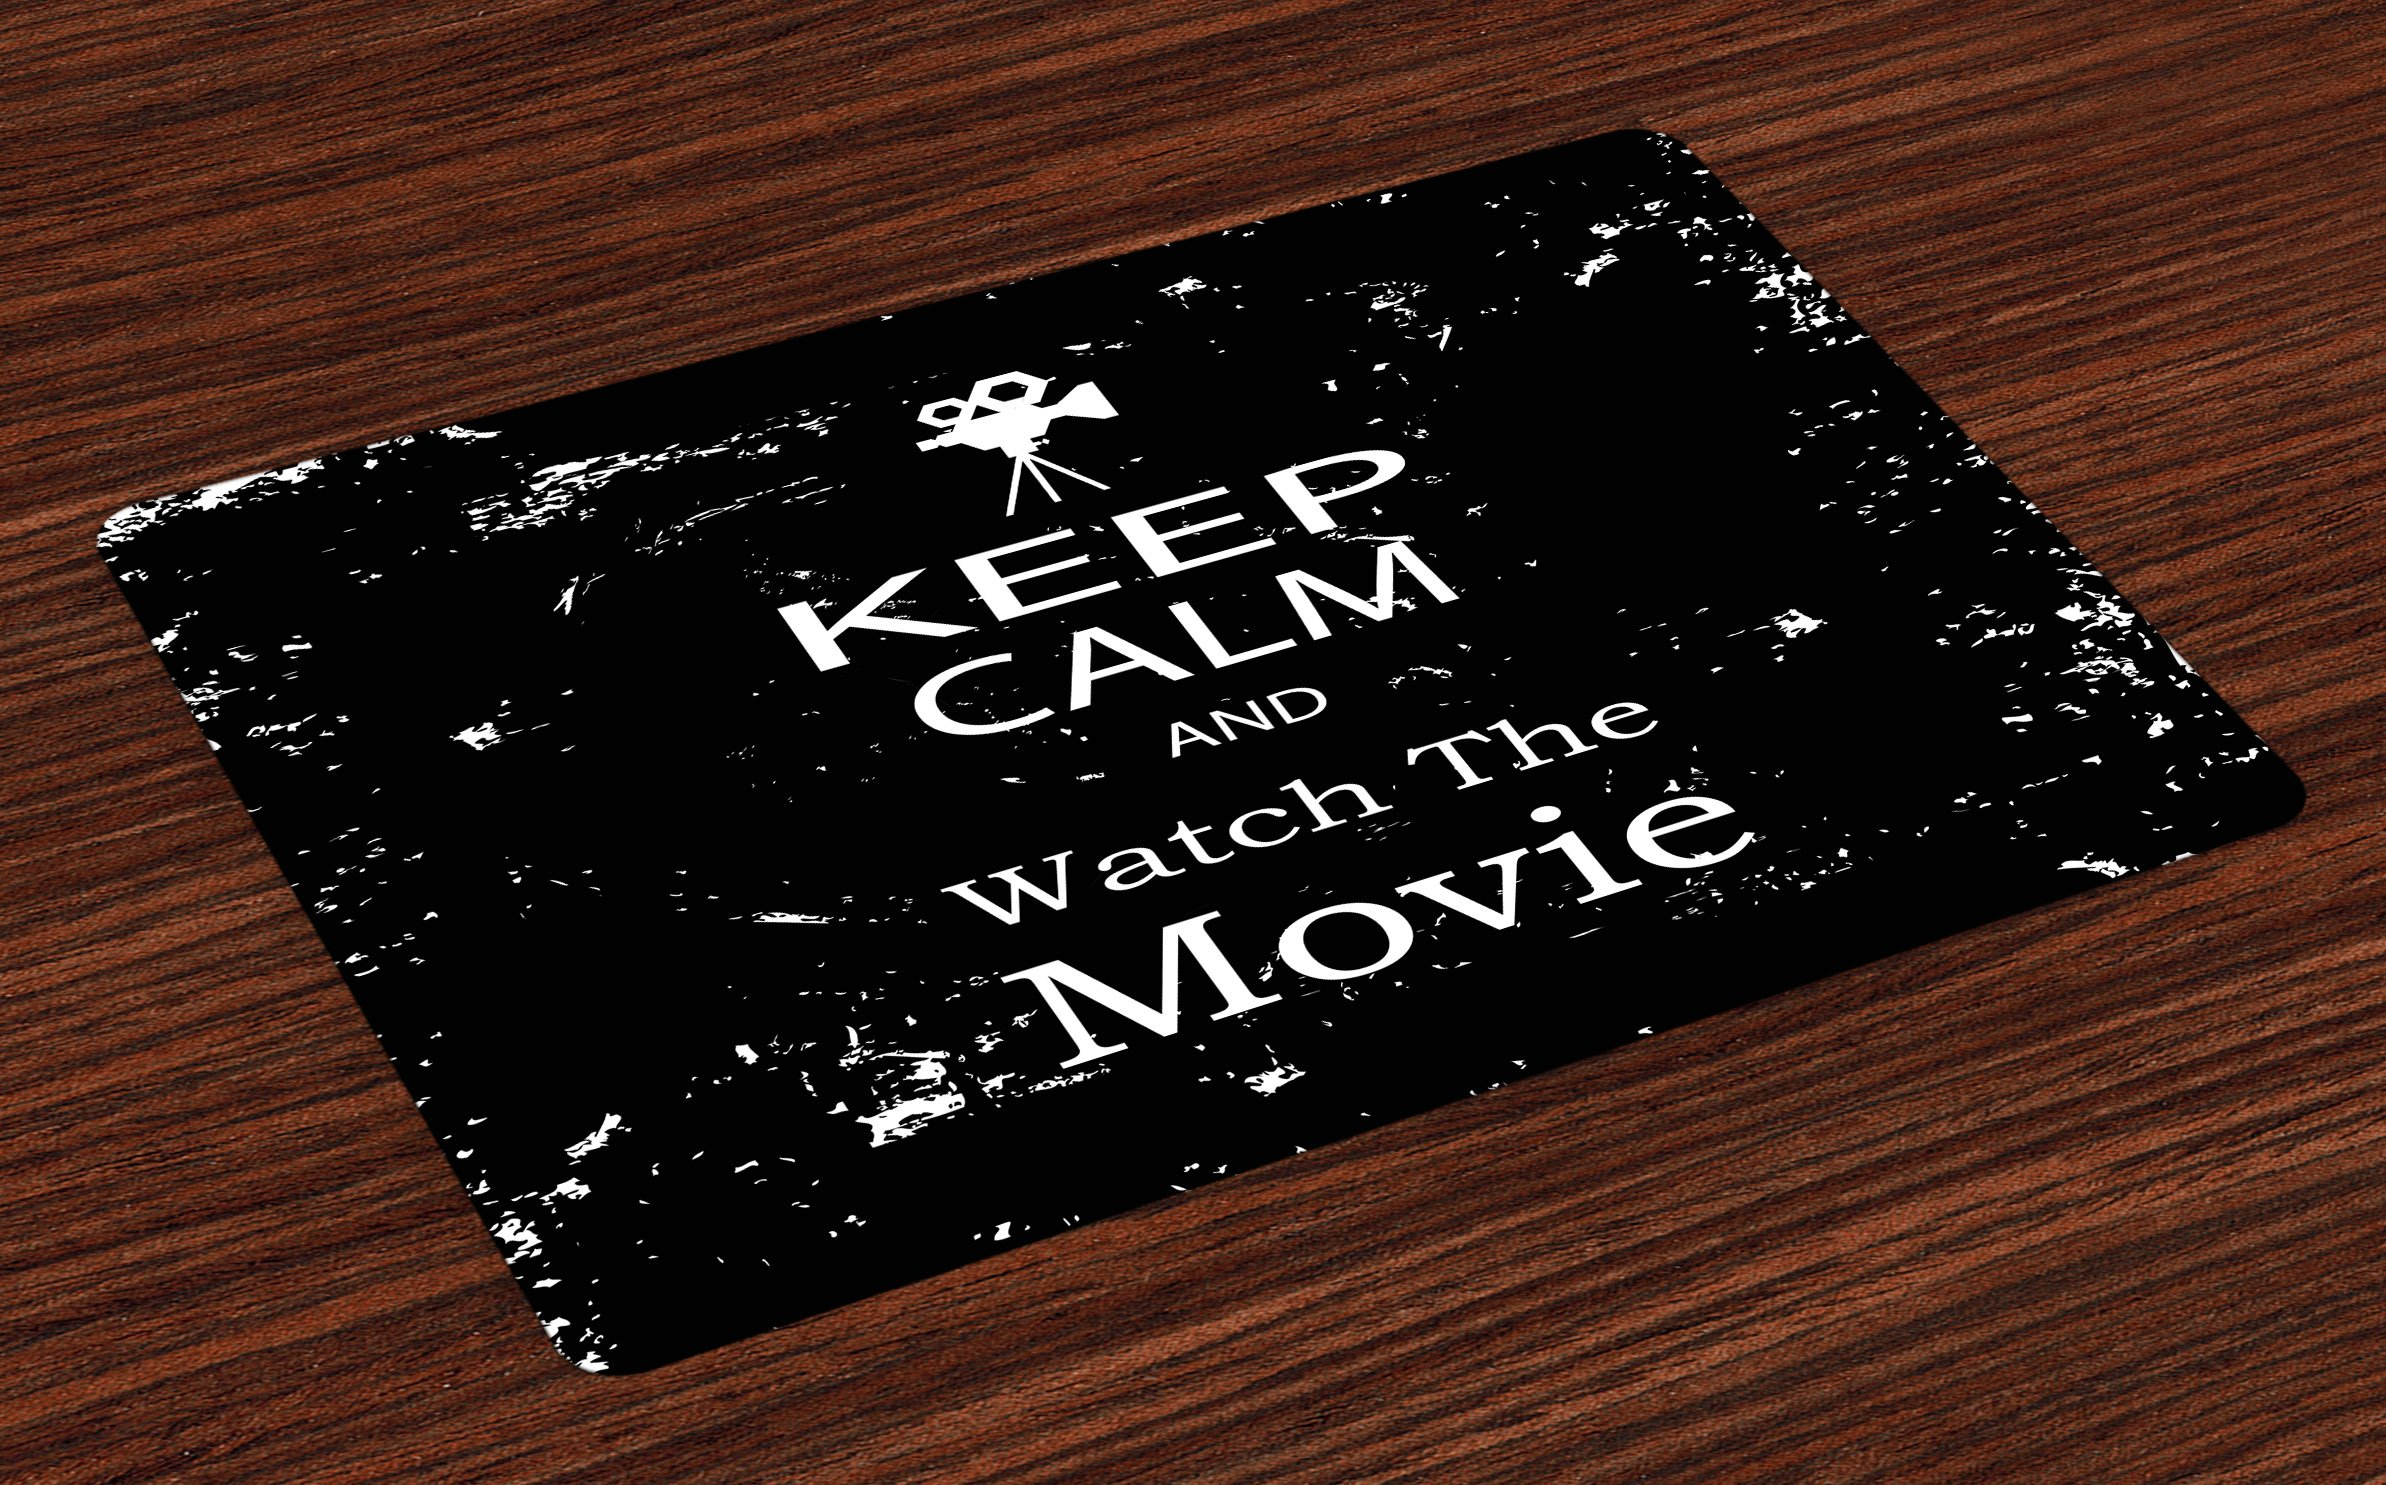 Ambesonne Keep Calm Place Mats Set of 4, Watch the Movie Quote for Film Buffs Grungy Weathered Backdrop with Old Camera, Washable Fabric Placemats for Dining Room Kitchen Table Decor, Black White